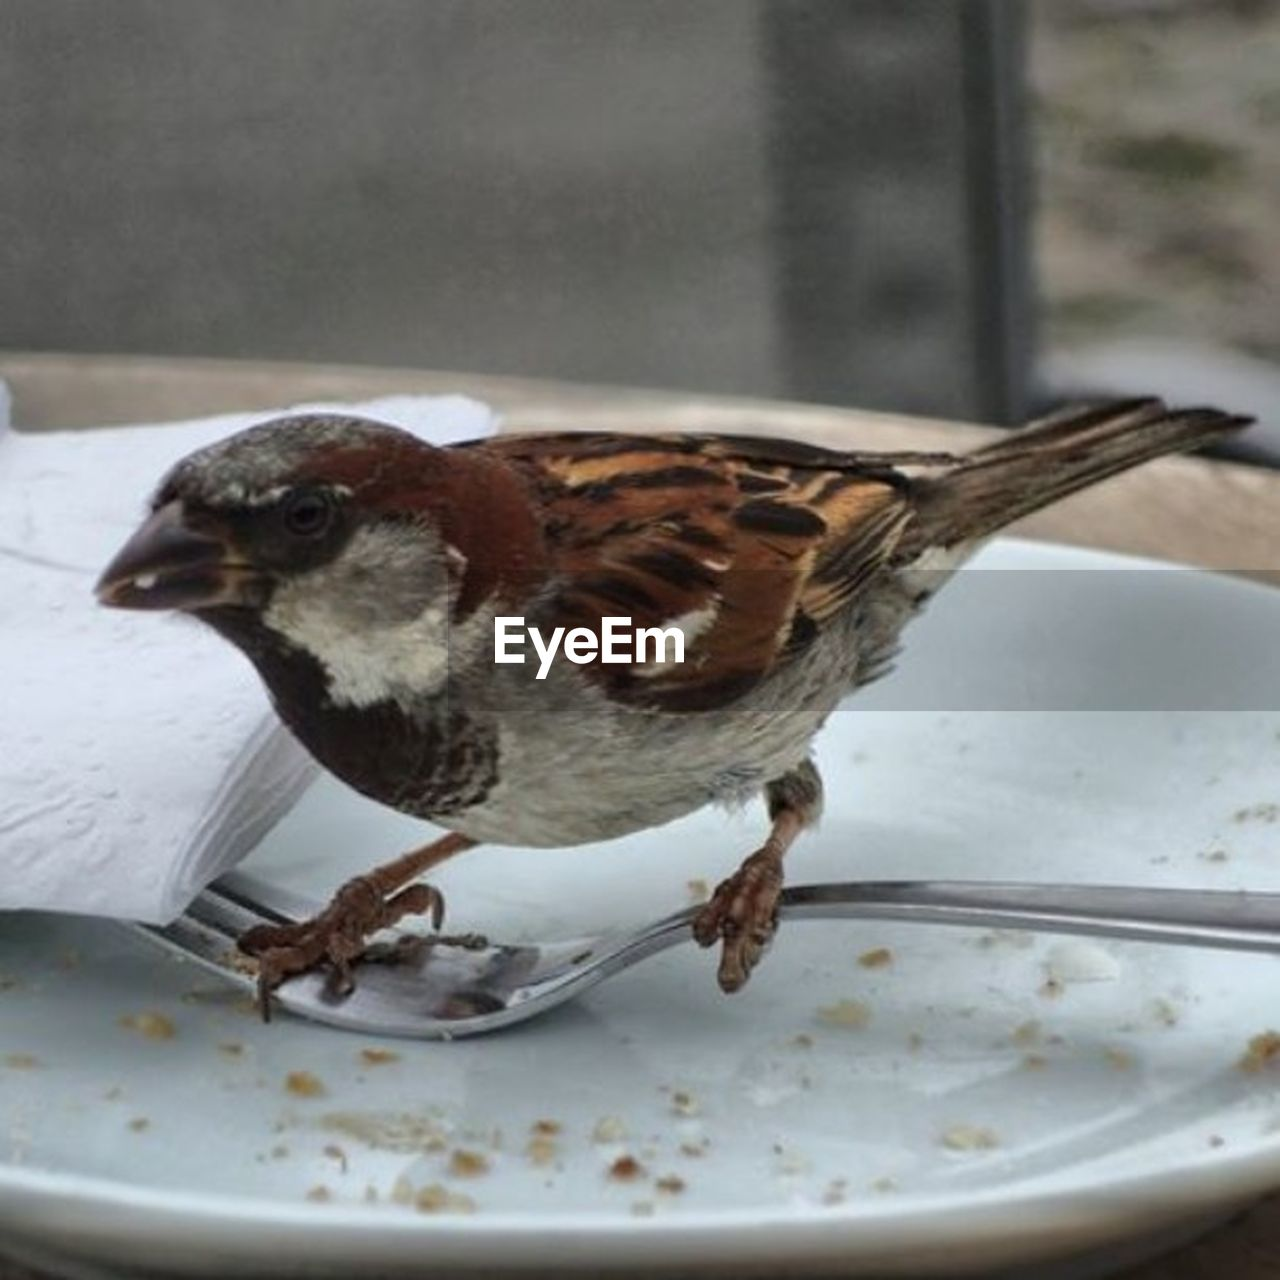 bird, plate, no people, animal themes, eating, one animal, close-up, day, eaten, food, sparrow, outdoors